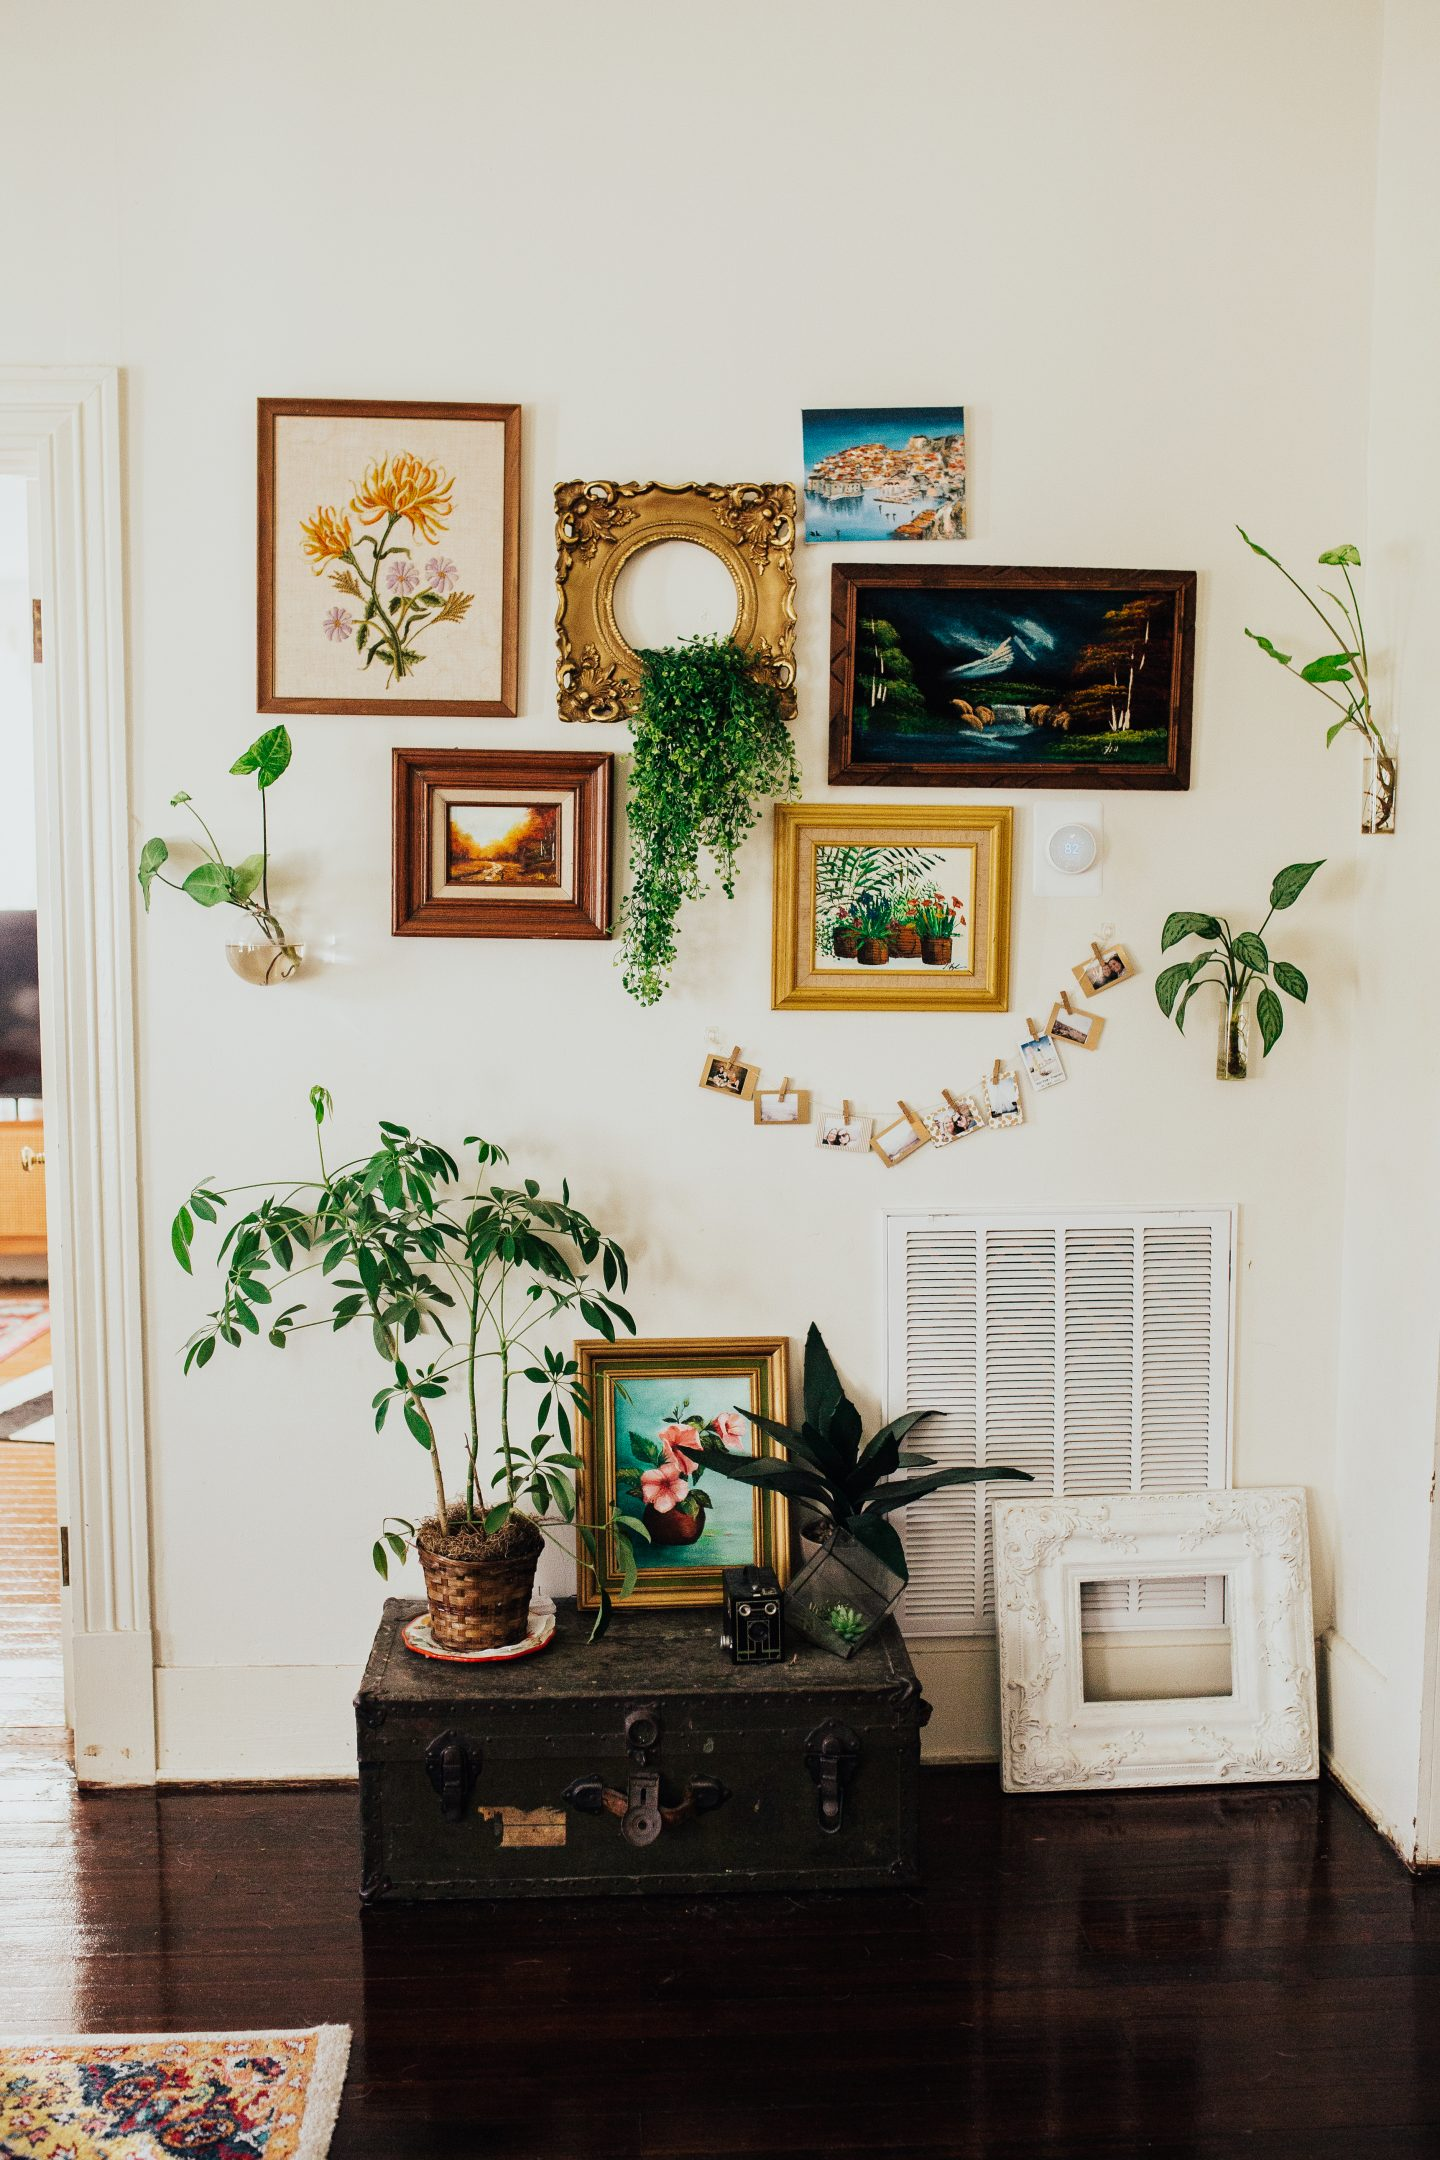 Want to have a jungalow vibe but worried about keeping your plants alive? Check out my top 5 indoor plants for beginners that are hard to kill even for those with the blackest of thumbs!